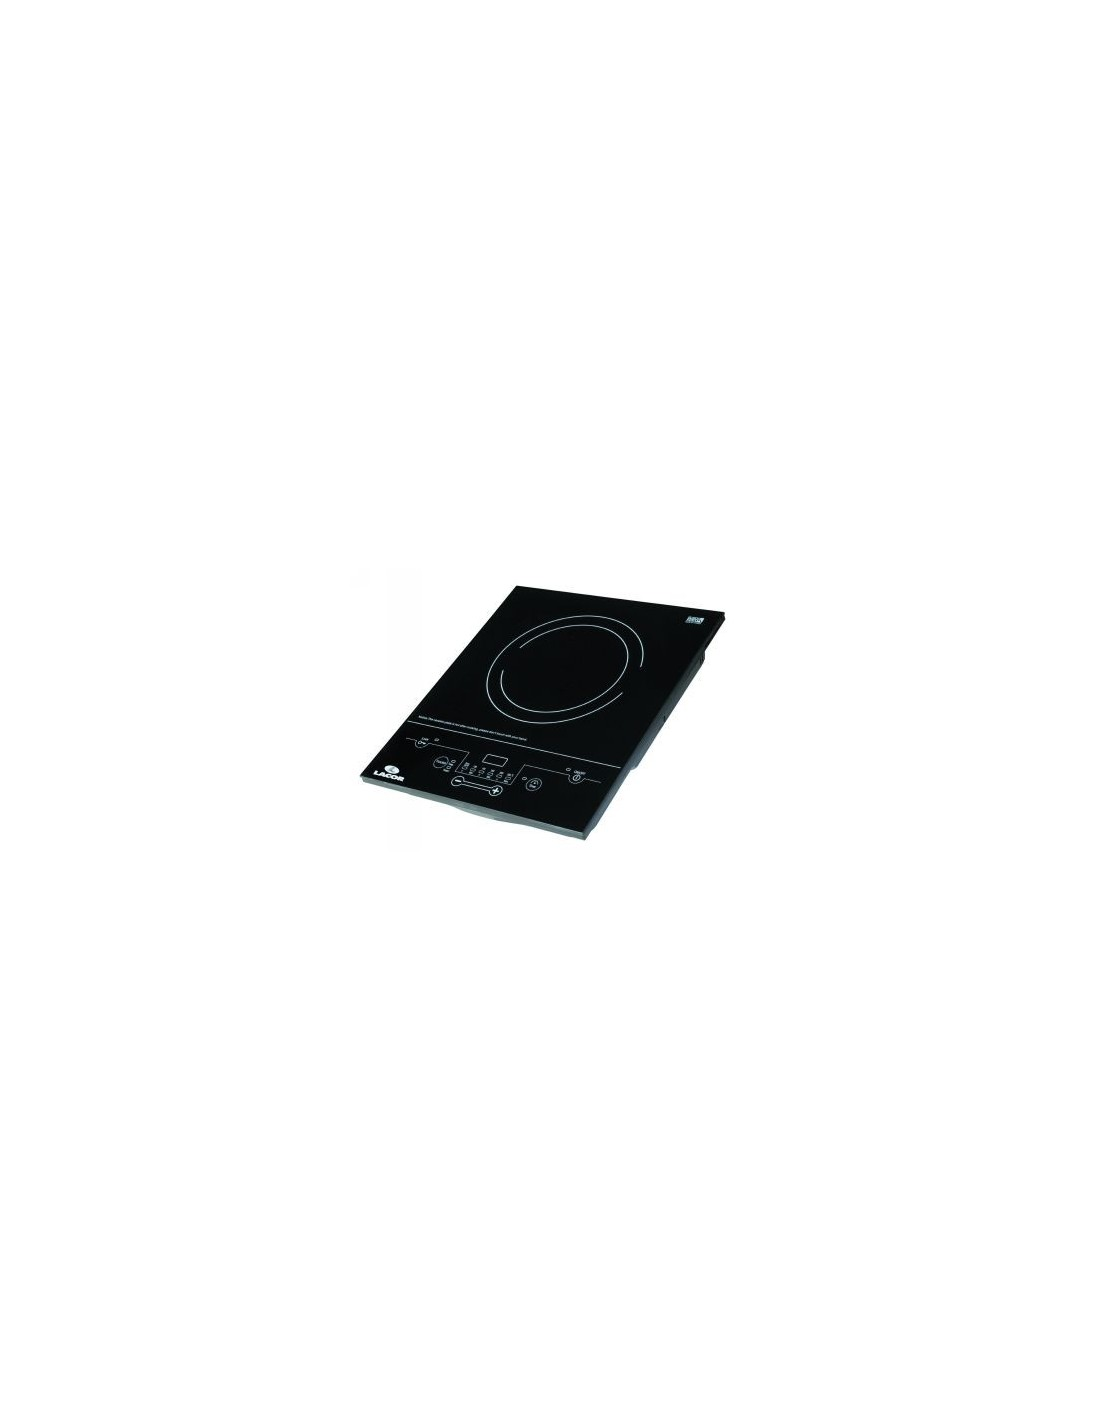 Placa de inducci n port til 2000w lacor mod 69032 - Placa induccion portatil ...